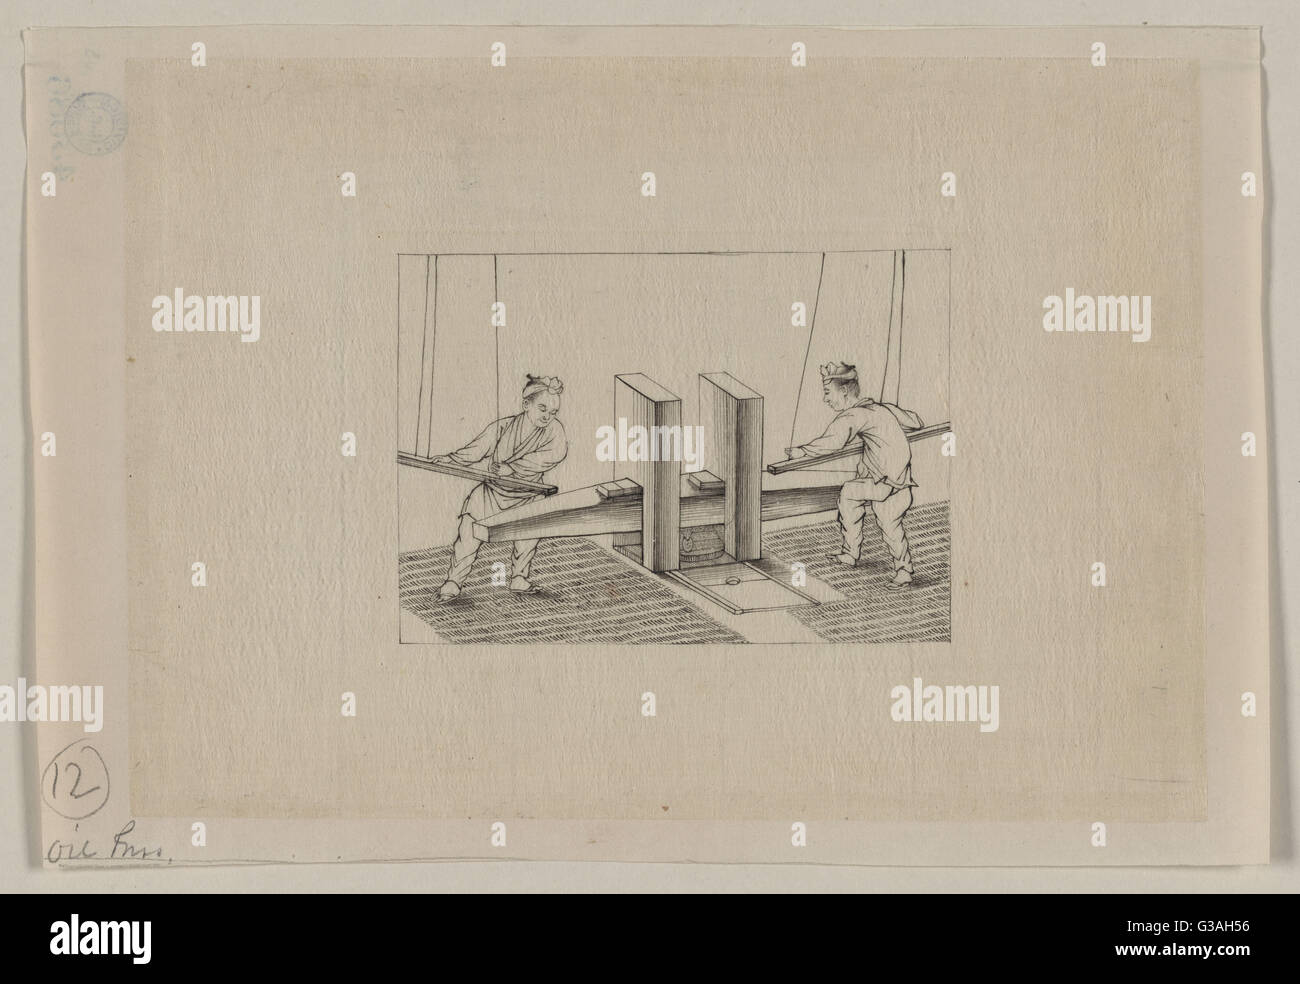 Oil press. Drawing shows two men using rods suspended by ropes to hit and force materials through a large press - Stock Image